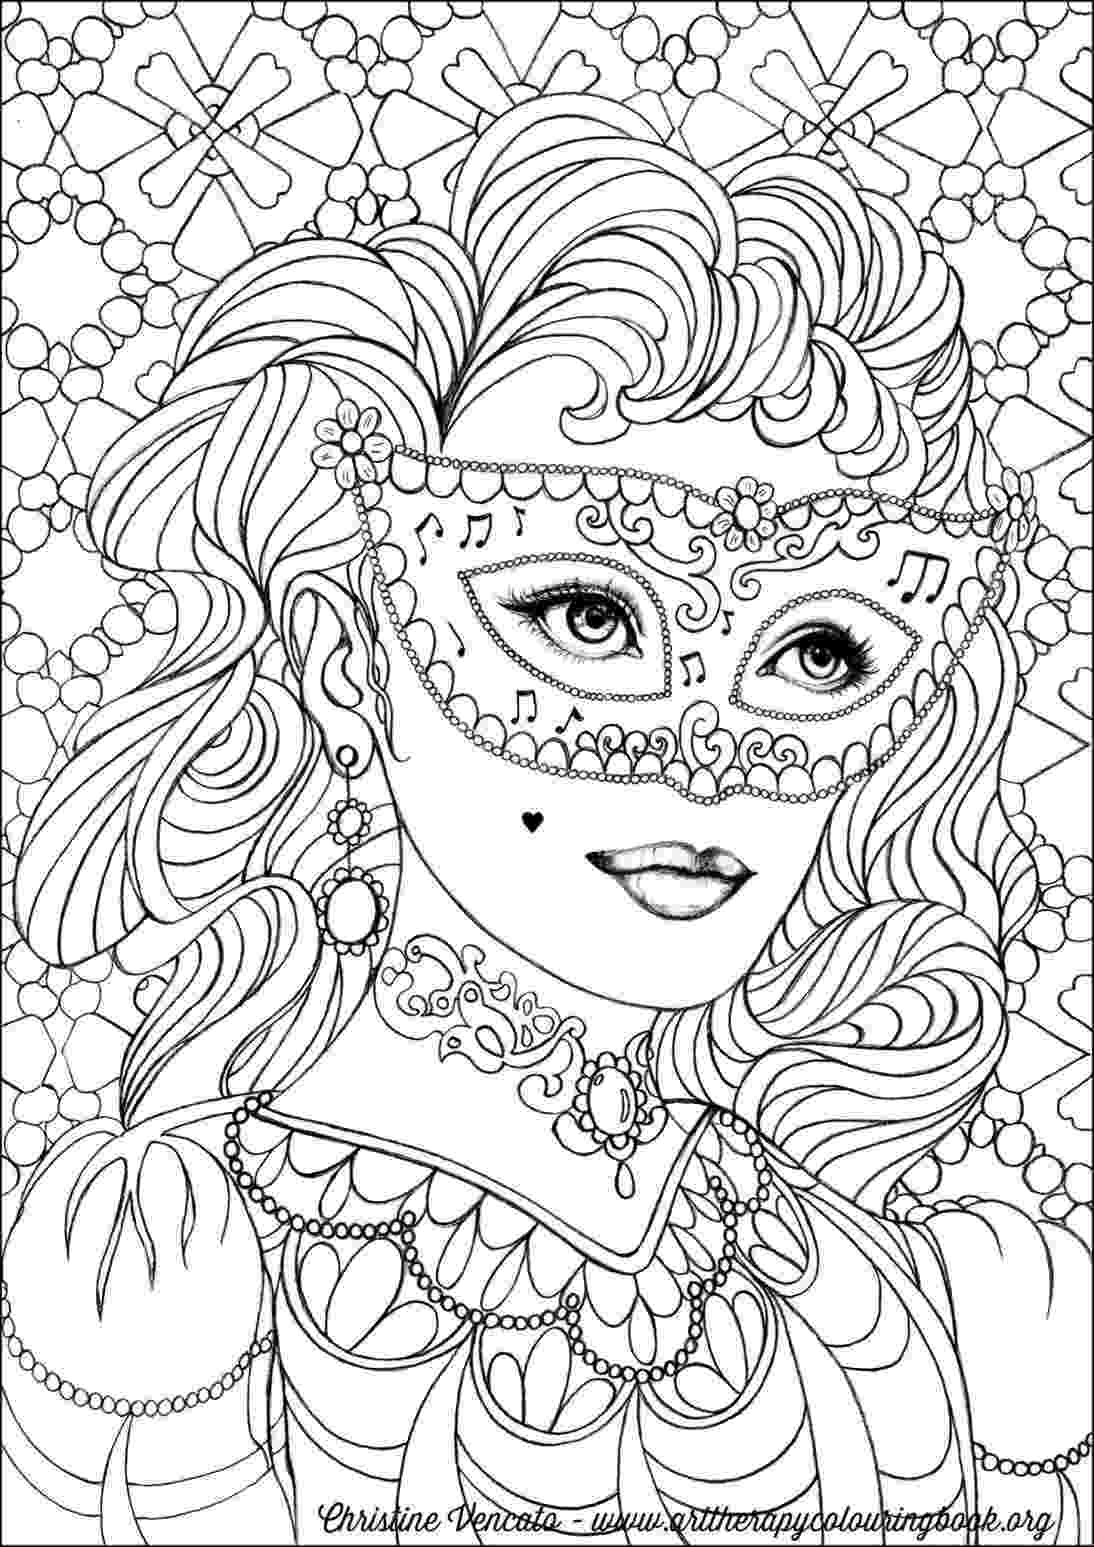 colouring for adults by numbers free coloring page from adult coloring worldwide art by by numbers for adults colouring